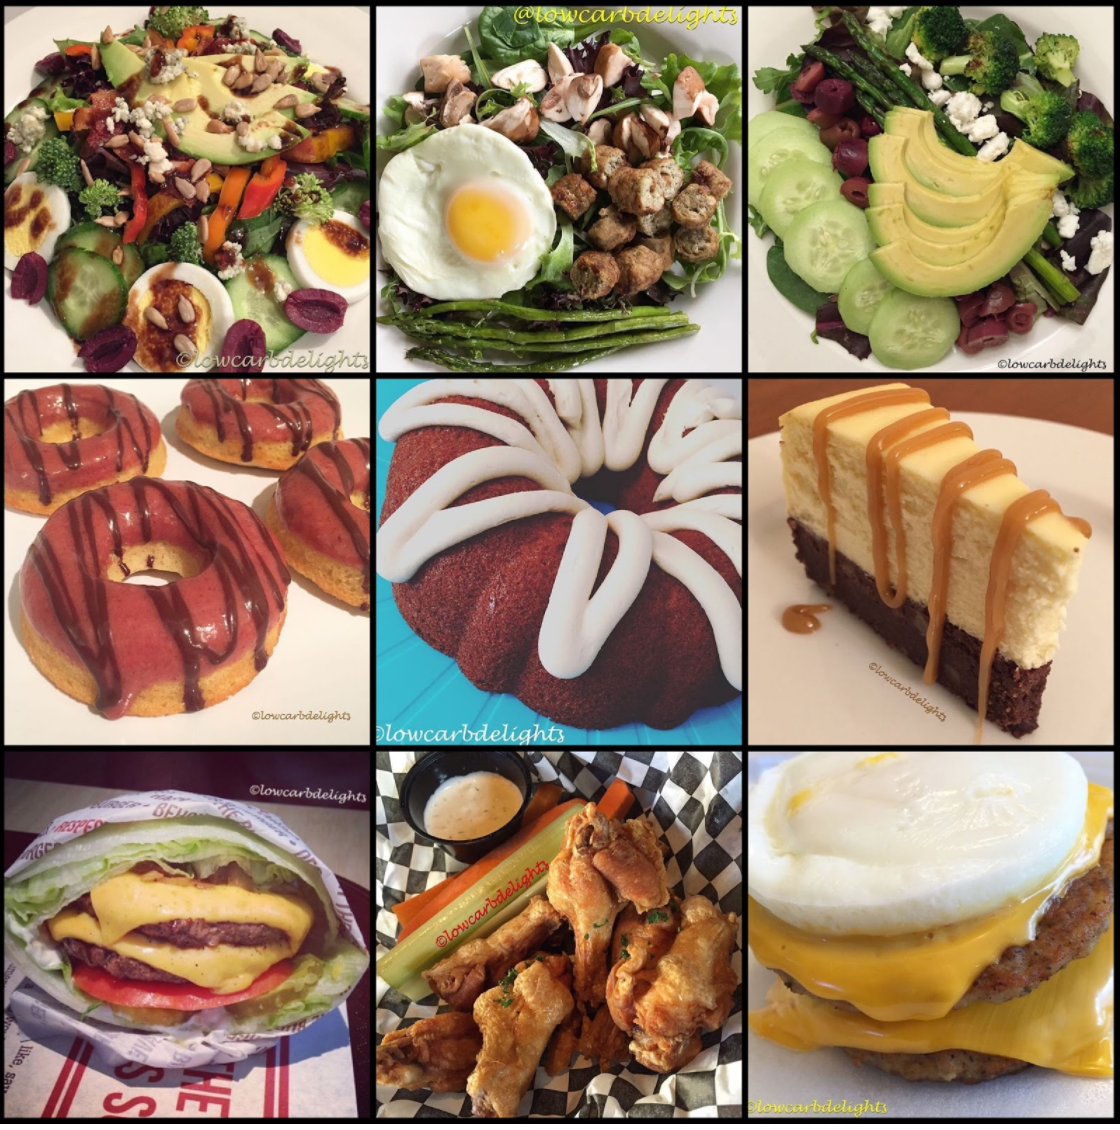 KETO TIPS & TRICKS INTERVIEW SERIES: MEET @LOWCARBDELIGHTS by Jen Fisch via Keto In The City